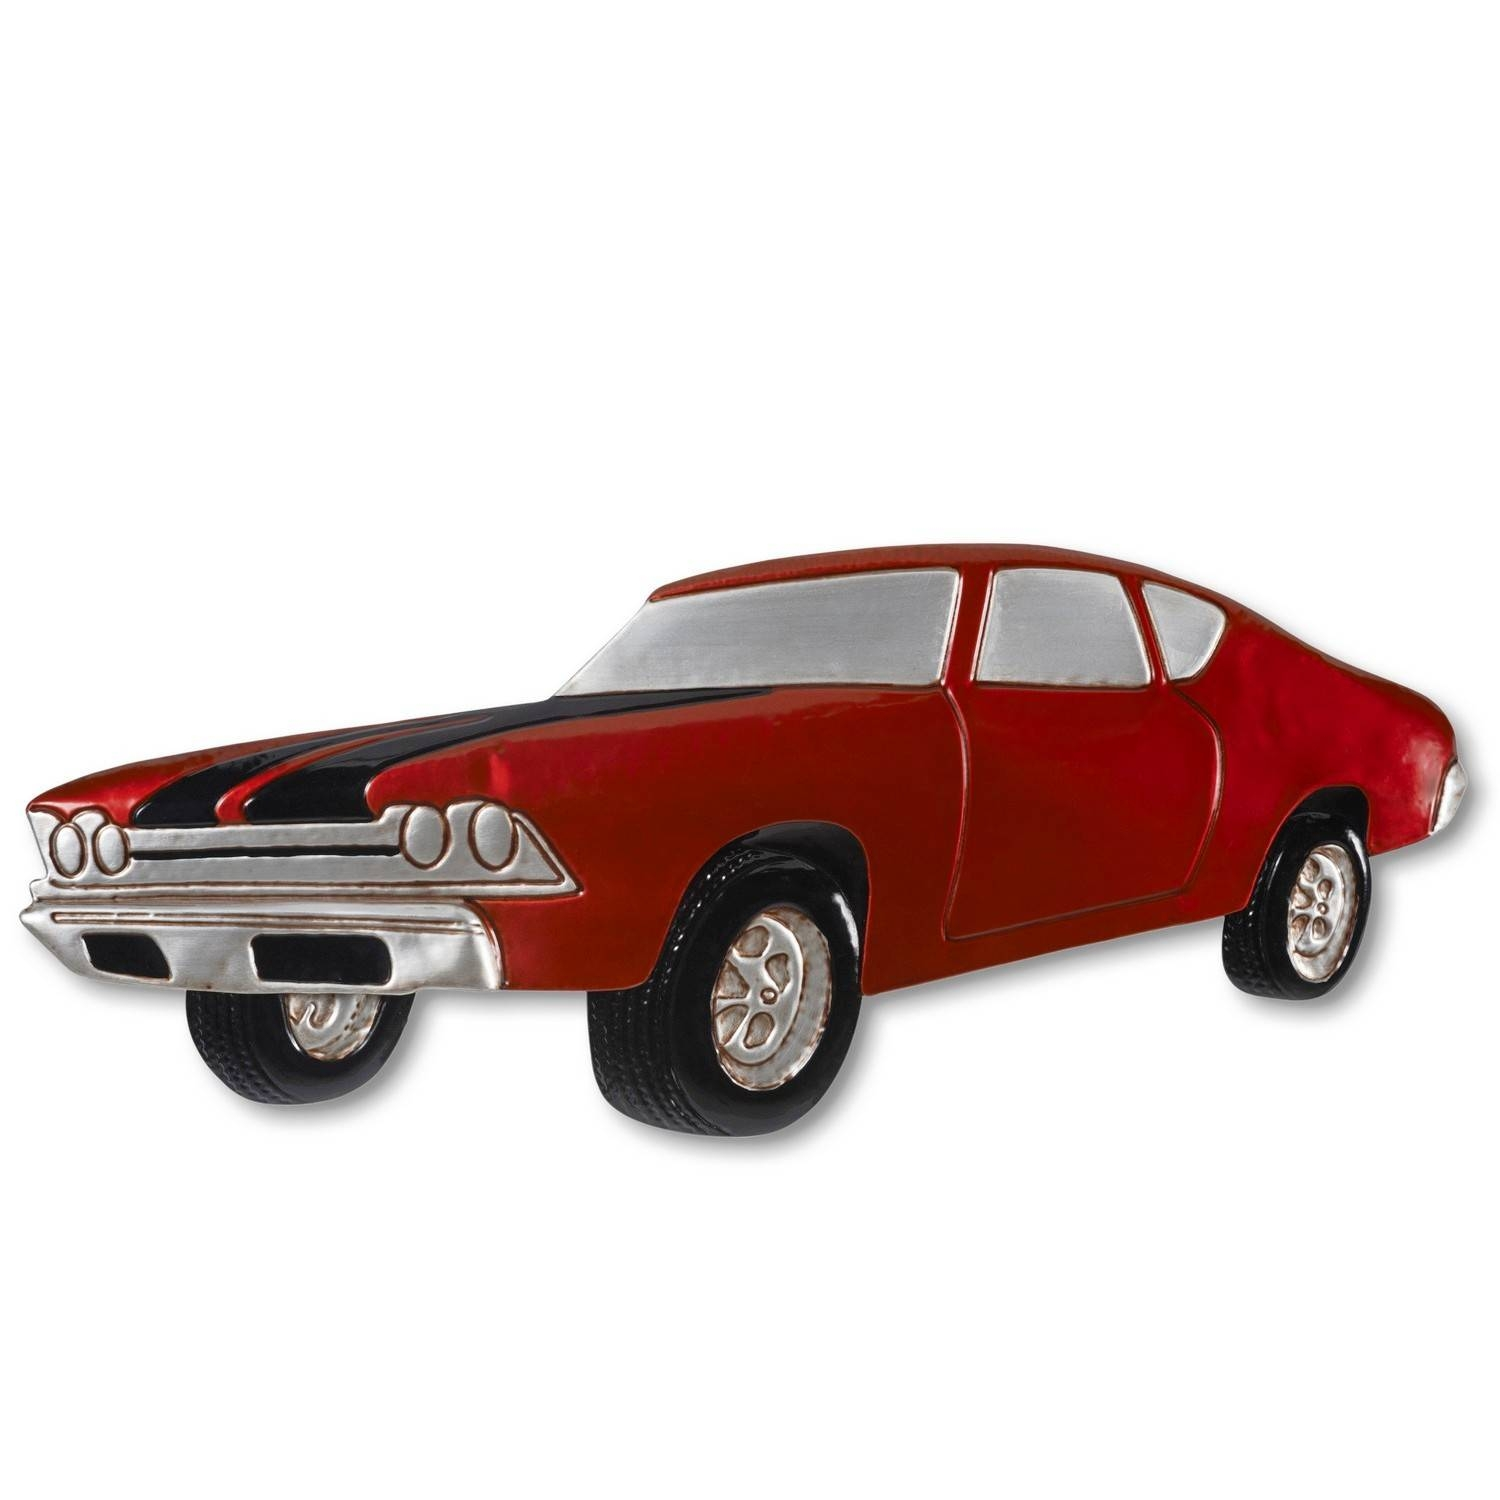 Metal Wall Art Red Vintage Car | Decorcave In Most Recent Car Metal Wall Art (View 6 of 20)